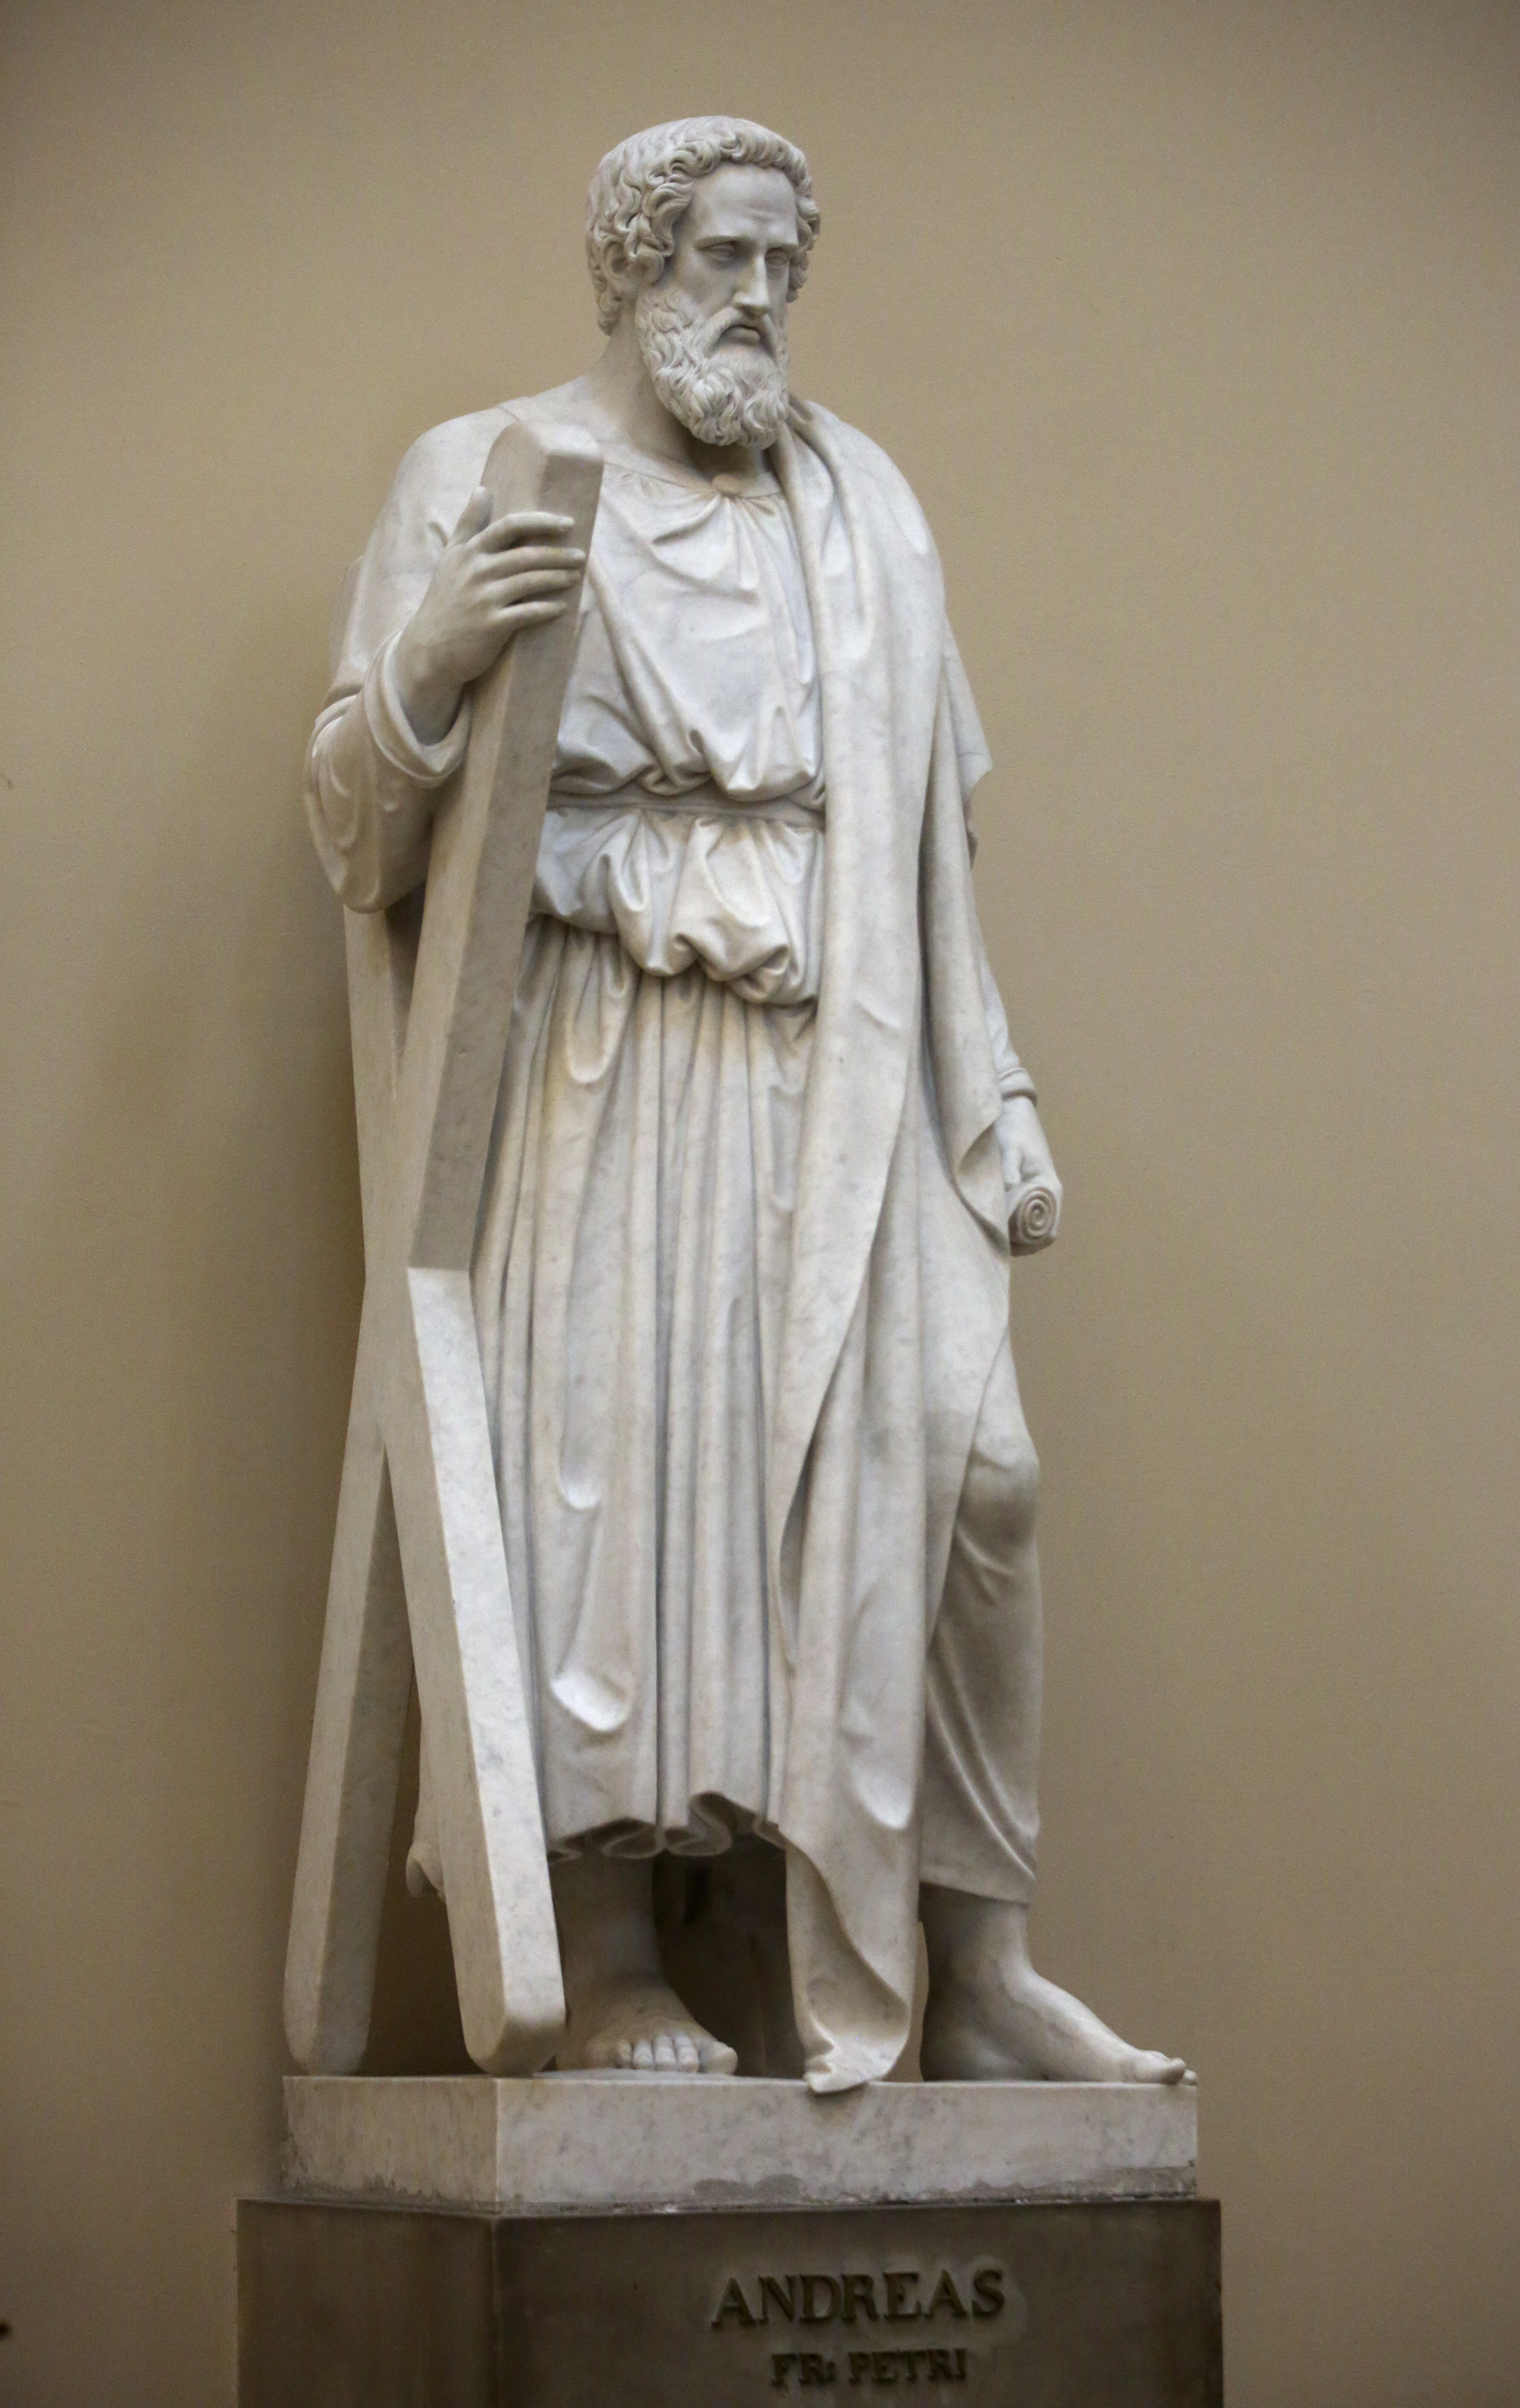 Bertel Thorvaldsen's statue of Andrew, one of the 12 apostles, holds a scroll and a large X-shaped cross at the Church of Our Lady in Copenhagen, Denmark, on Tuesday, Nov. 13, 2018. The 12 apostles statues were carved out of Carrara marble between 1829 and 1848. Replicas of the statues are now on display in the Rome Temple Visitors' Center in Italy.